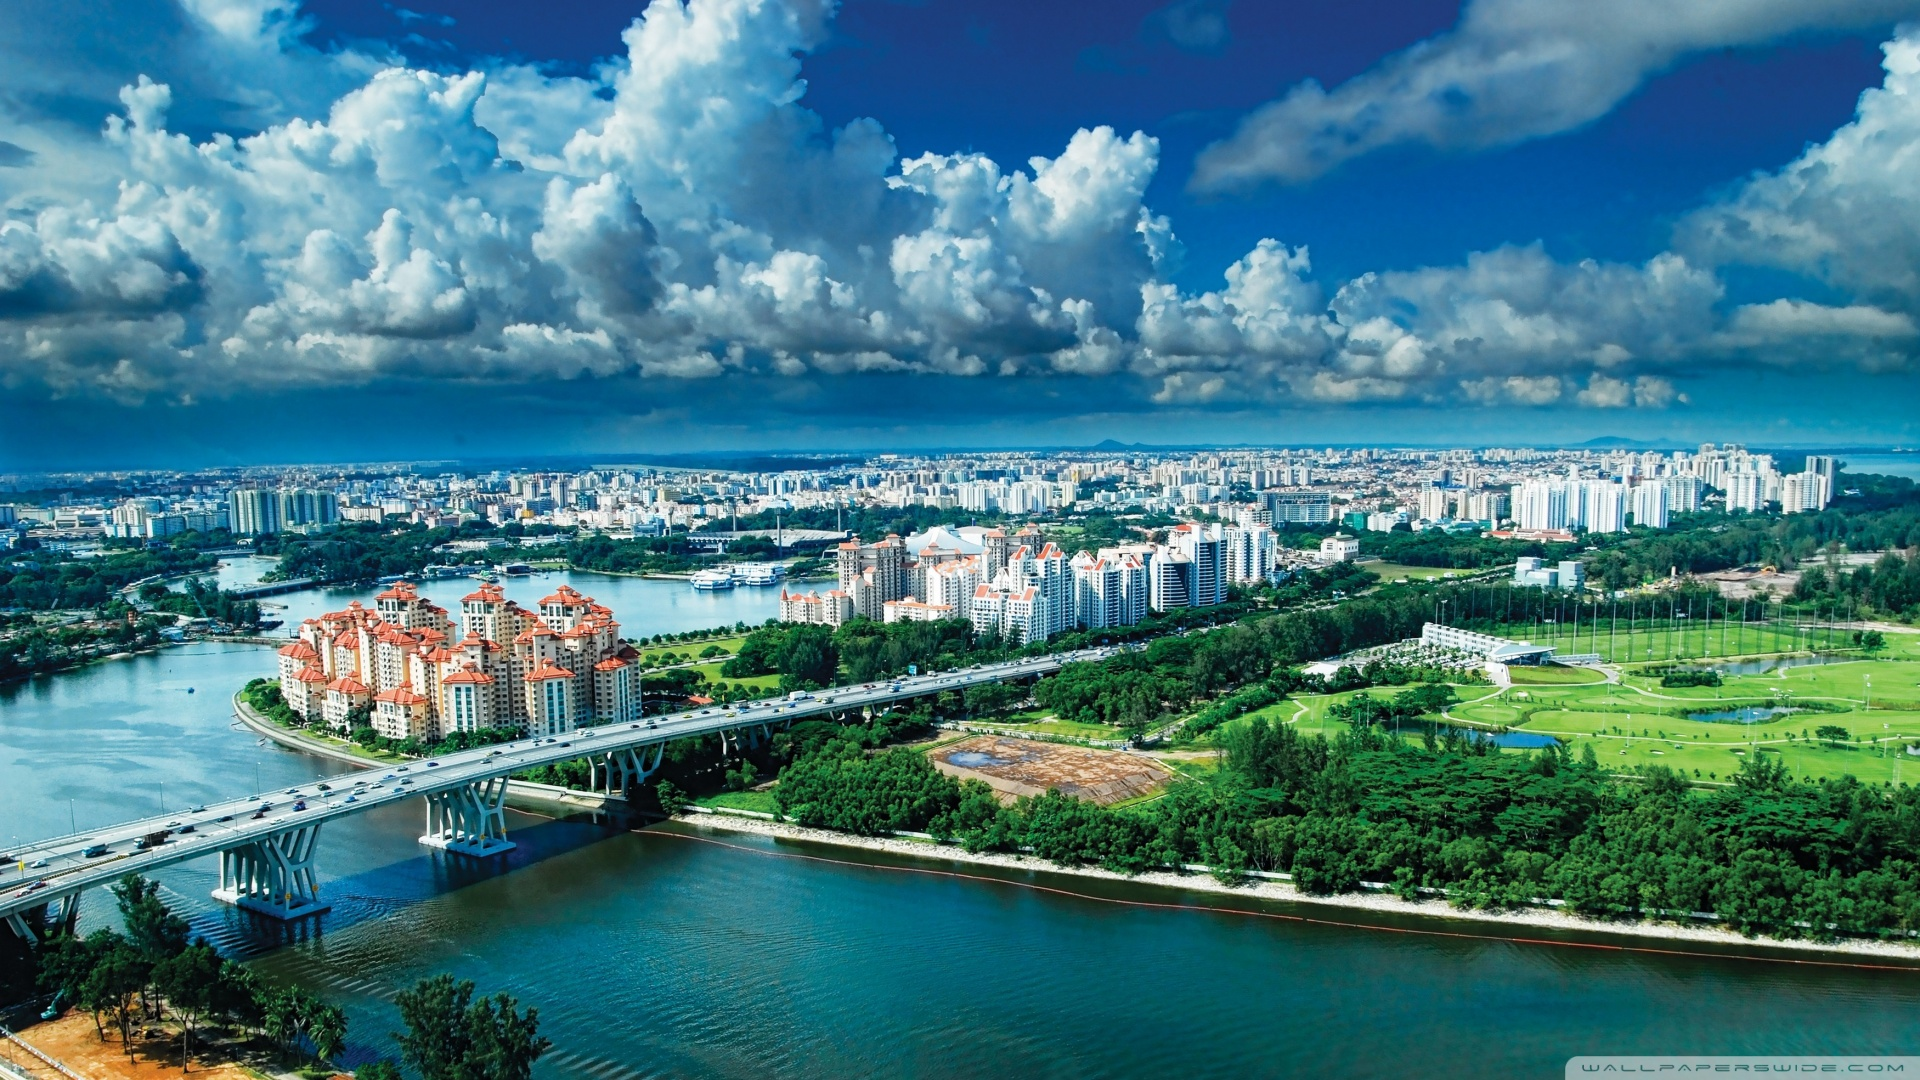 Superannuation savings used for house purchases works in Singapore